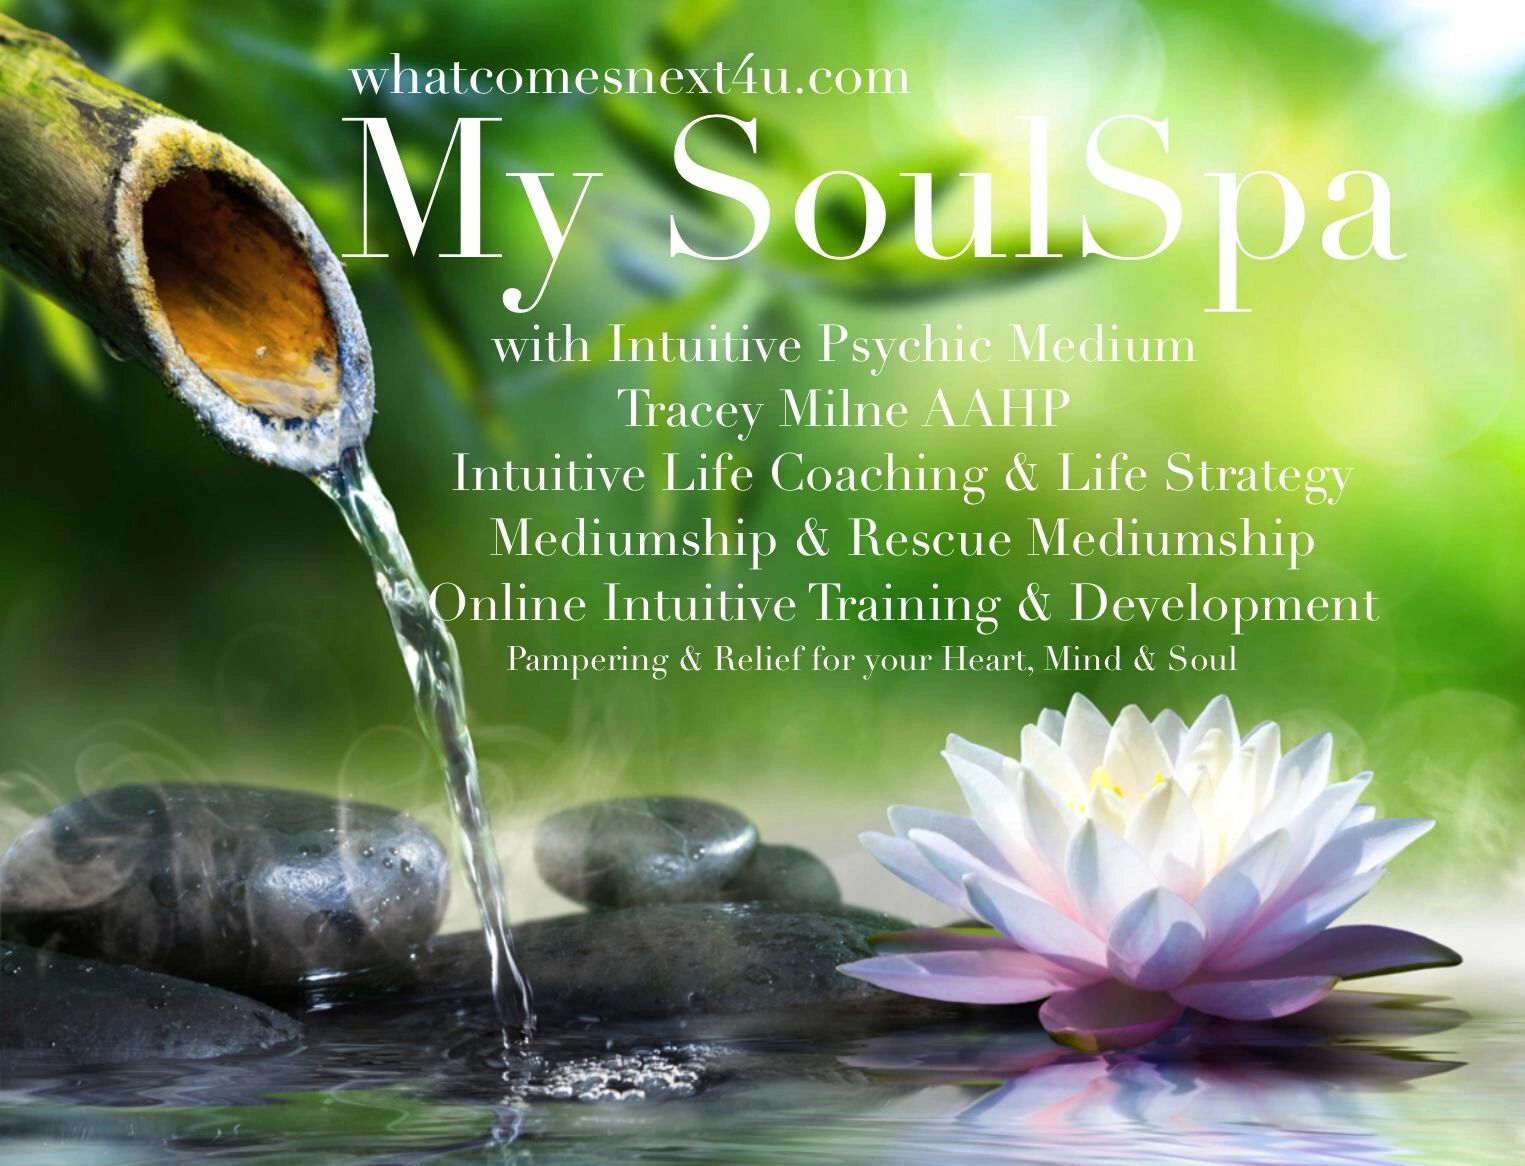 My SoulSpa Intuitive Services. Psychic Readings, Mediumship, Life Coach, Ghost clearing& training